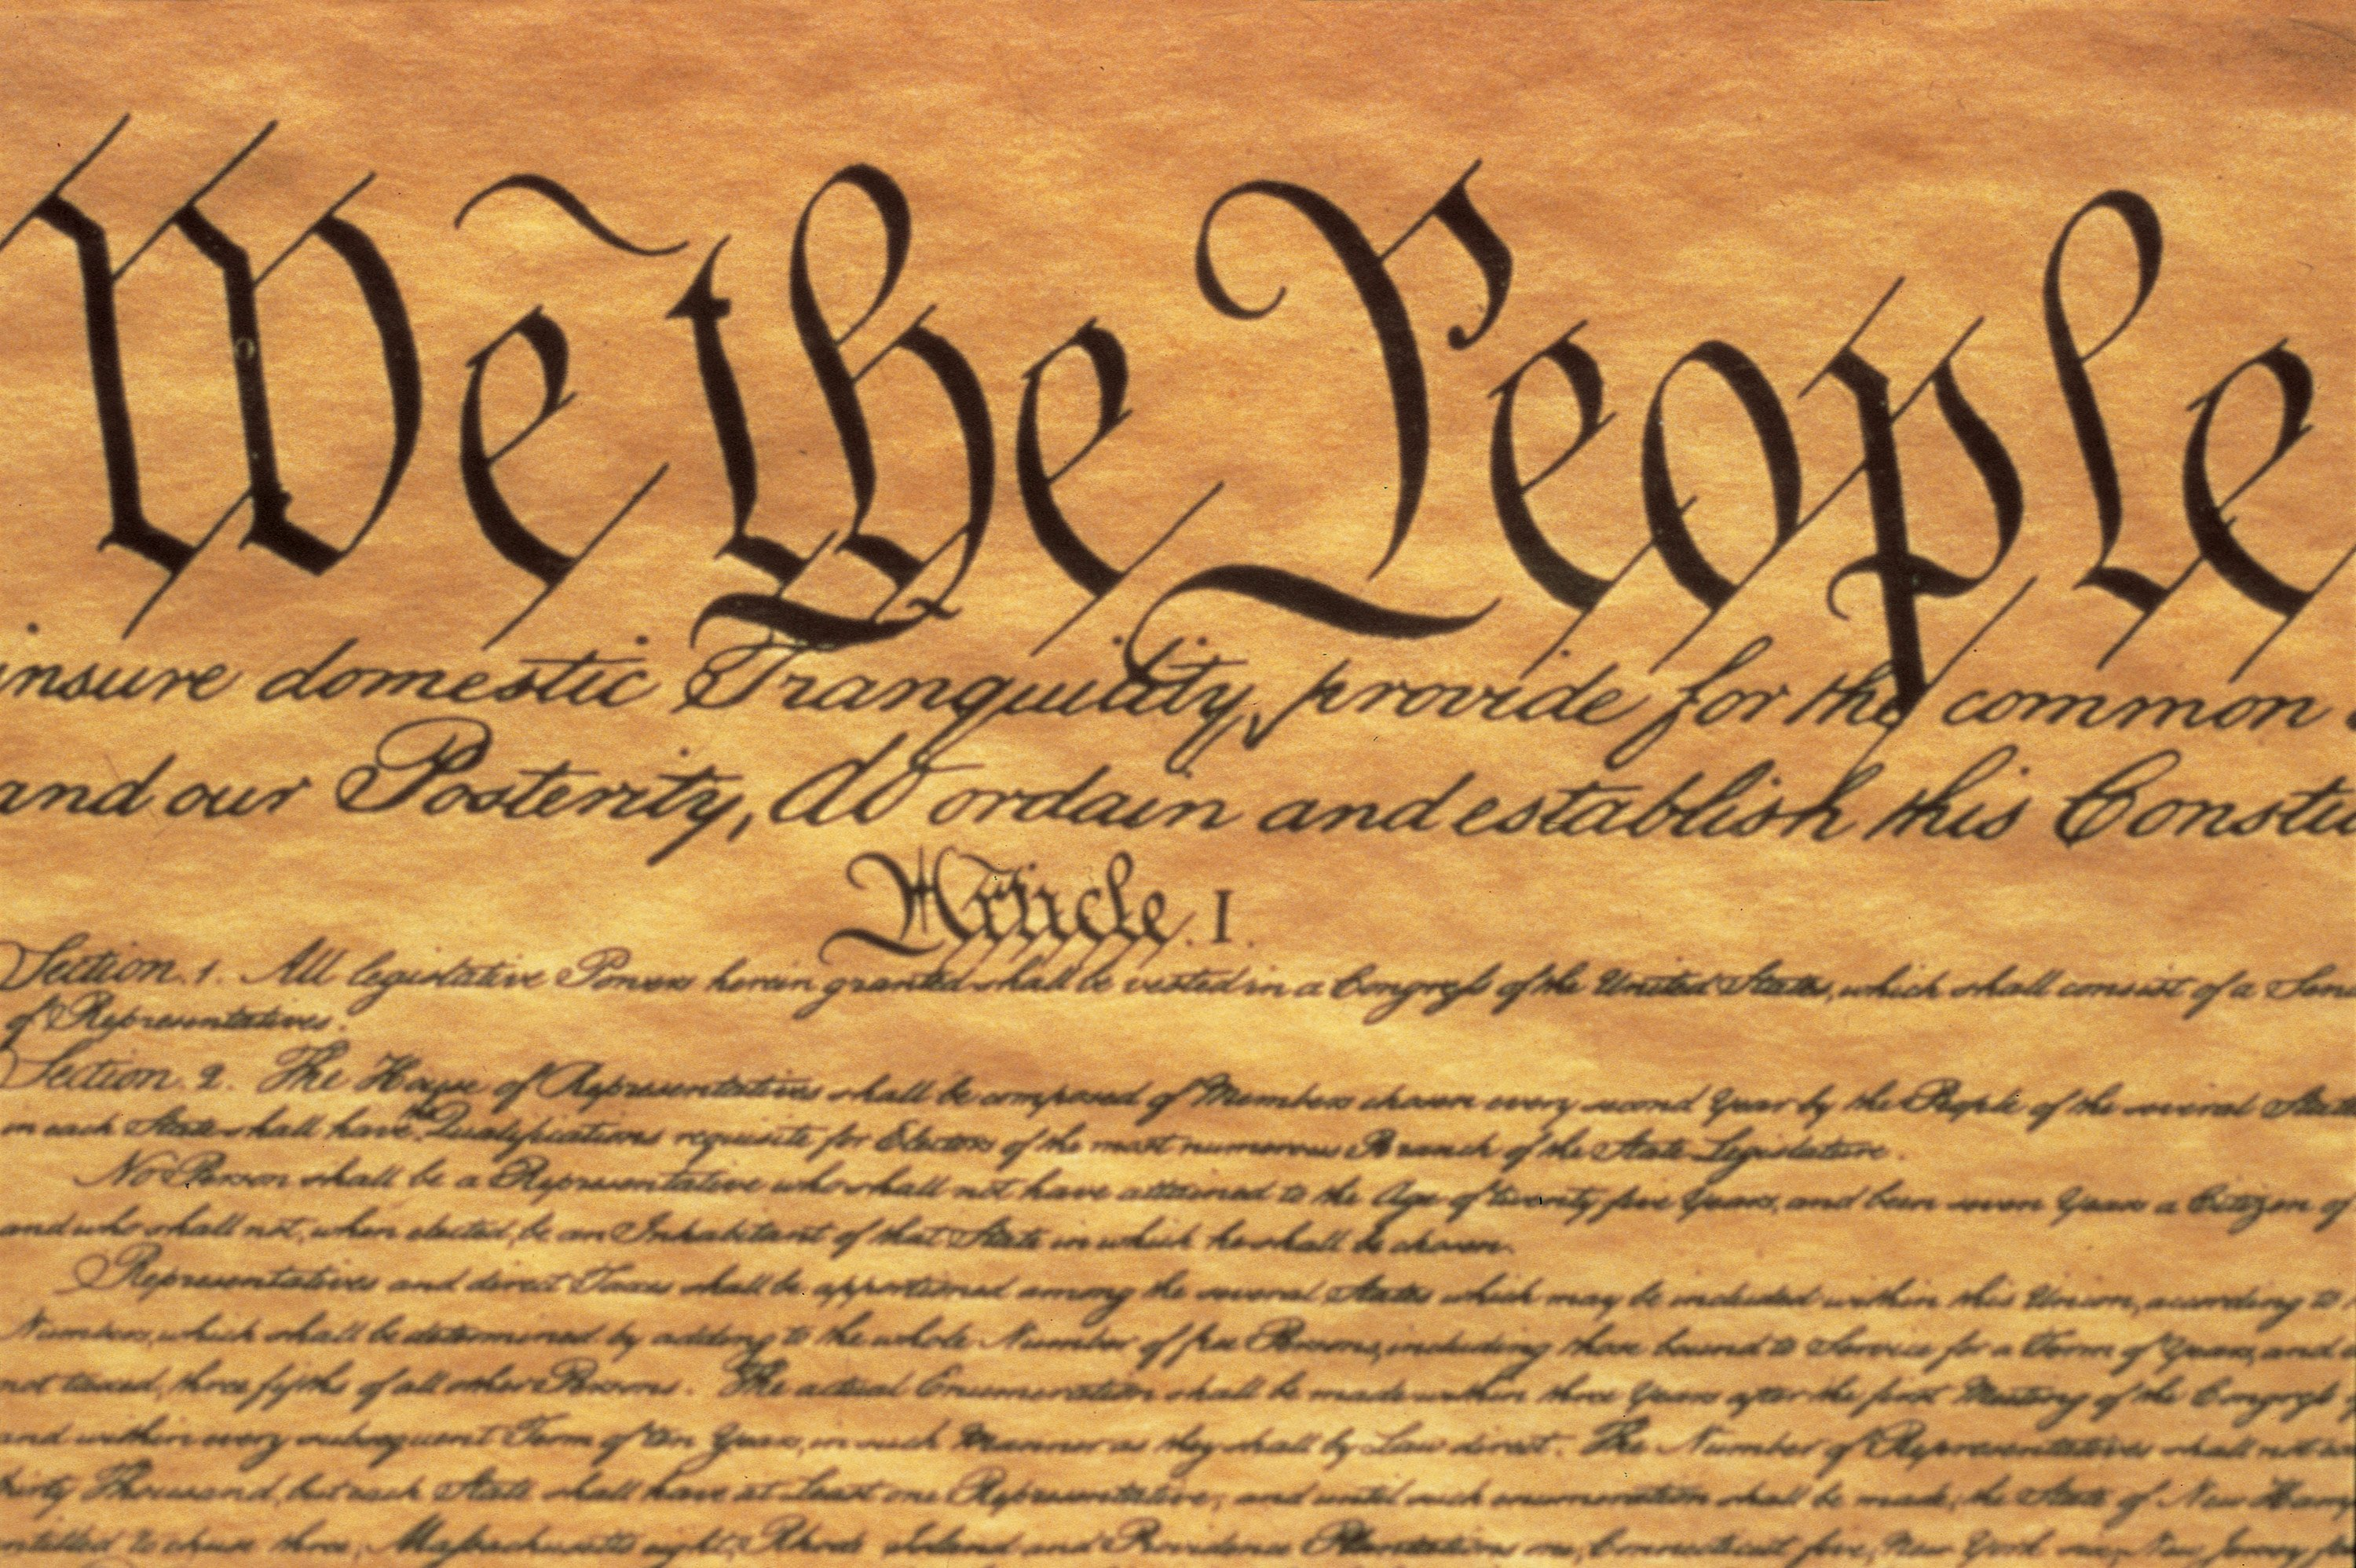 It's Constitution Day! This quiz will show how well you know the US Constitution